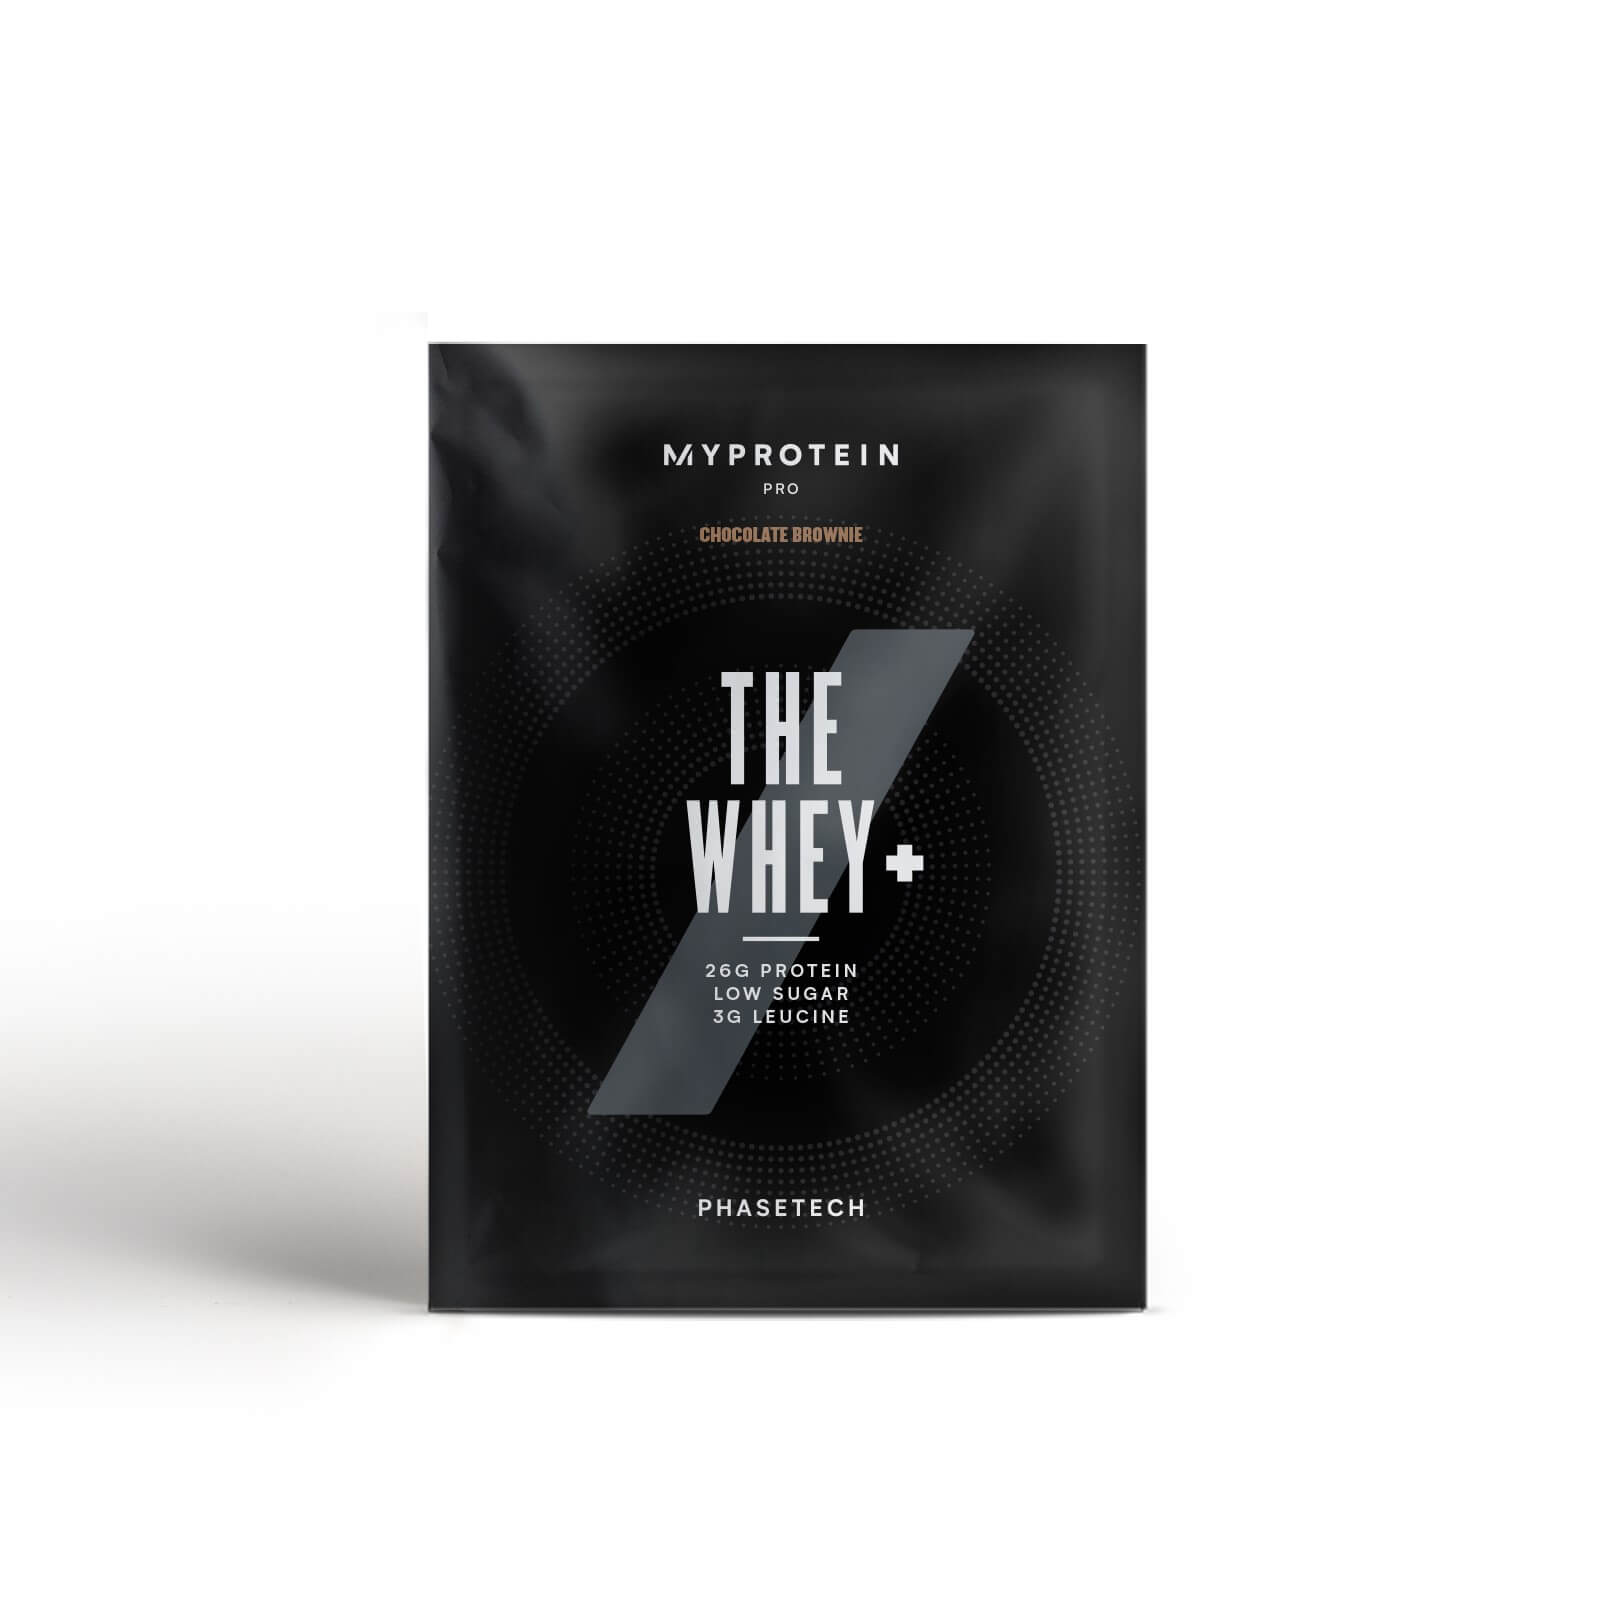 THE Whey+ (Échantillon) - Chocolat Brownie